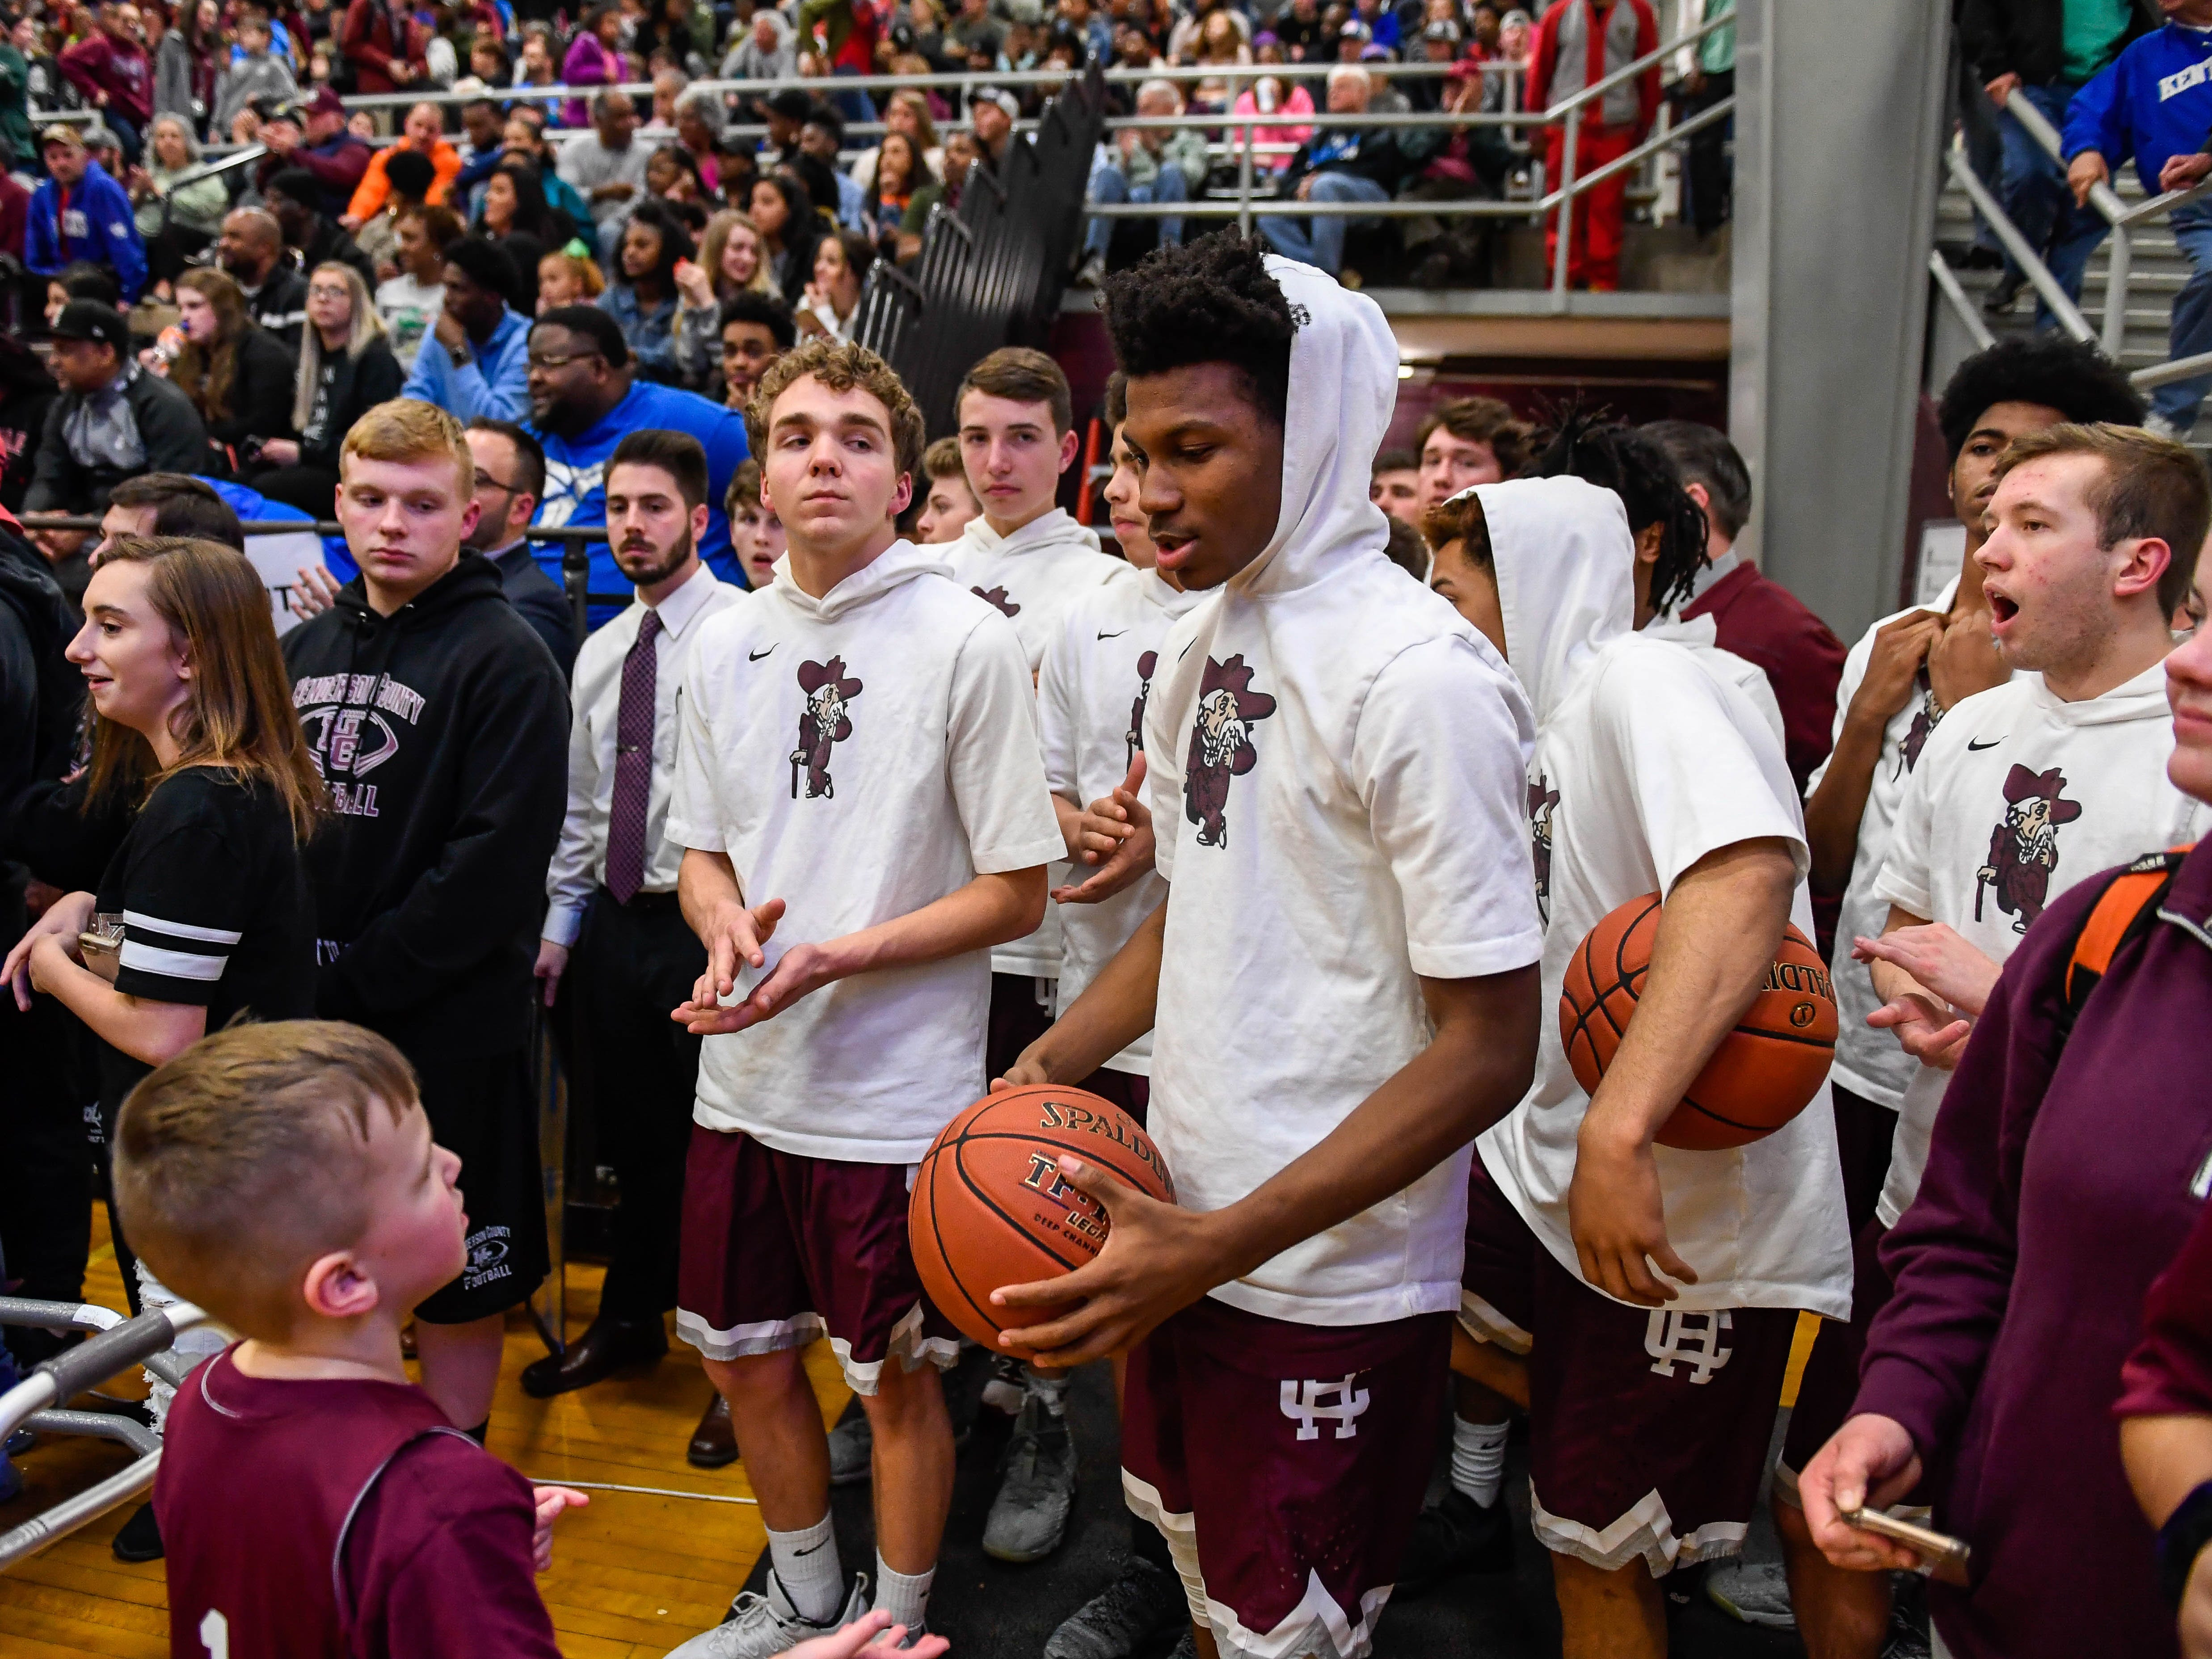 The Colonels wait to take the floor as the Henderson County Colonels play the Madisonville Maroons in the Boys 2nd Region basketball semi-finals Friday in Hansen, March 1, 2019.